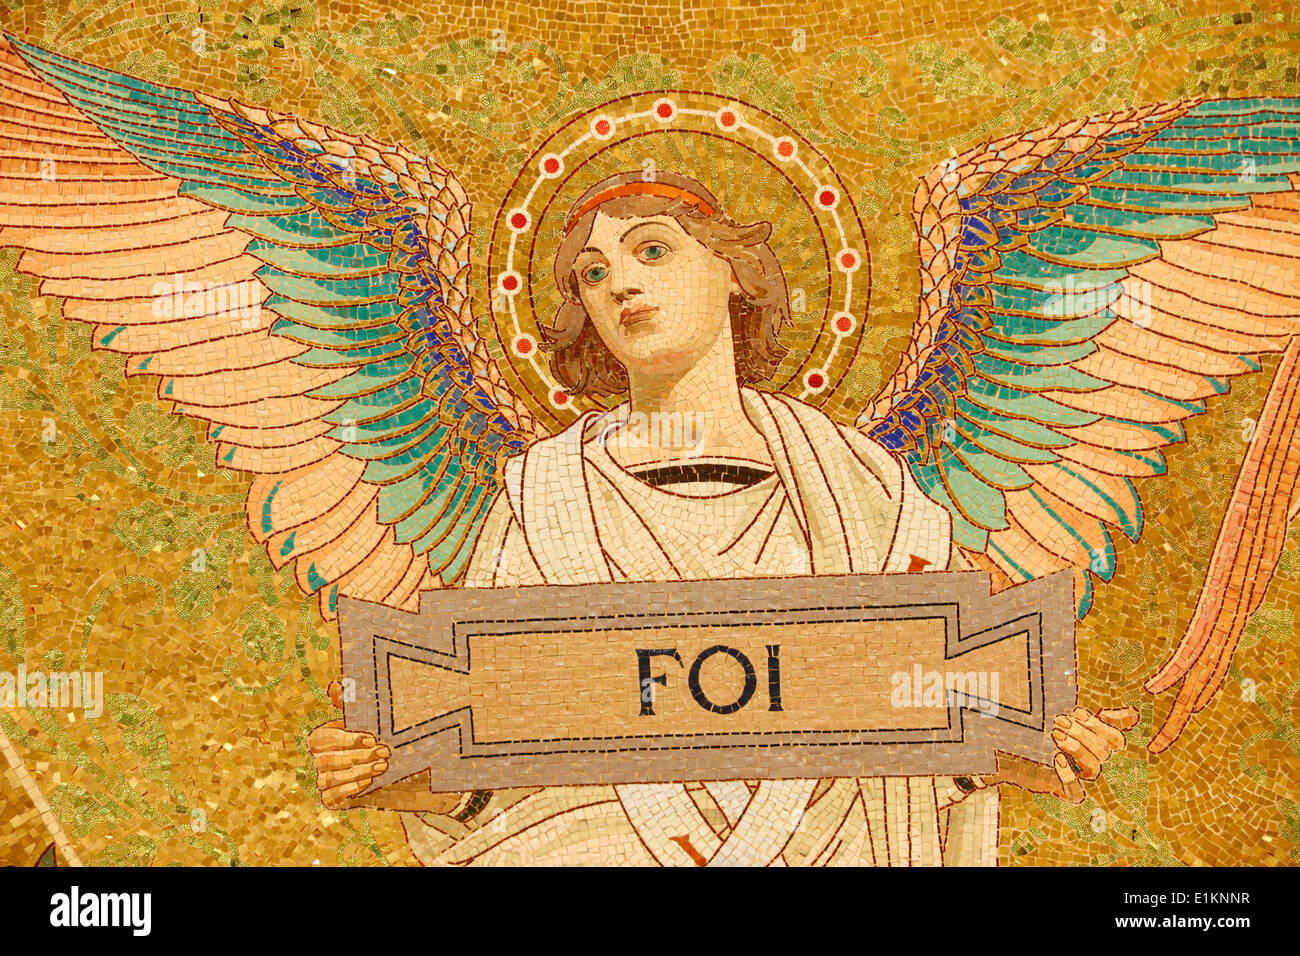 Pasteur Institute crypt : science angel by A. Guillebert-Martin - Stock Image